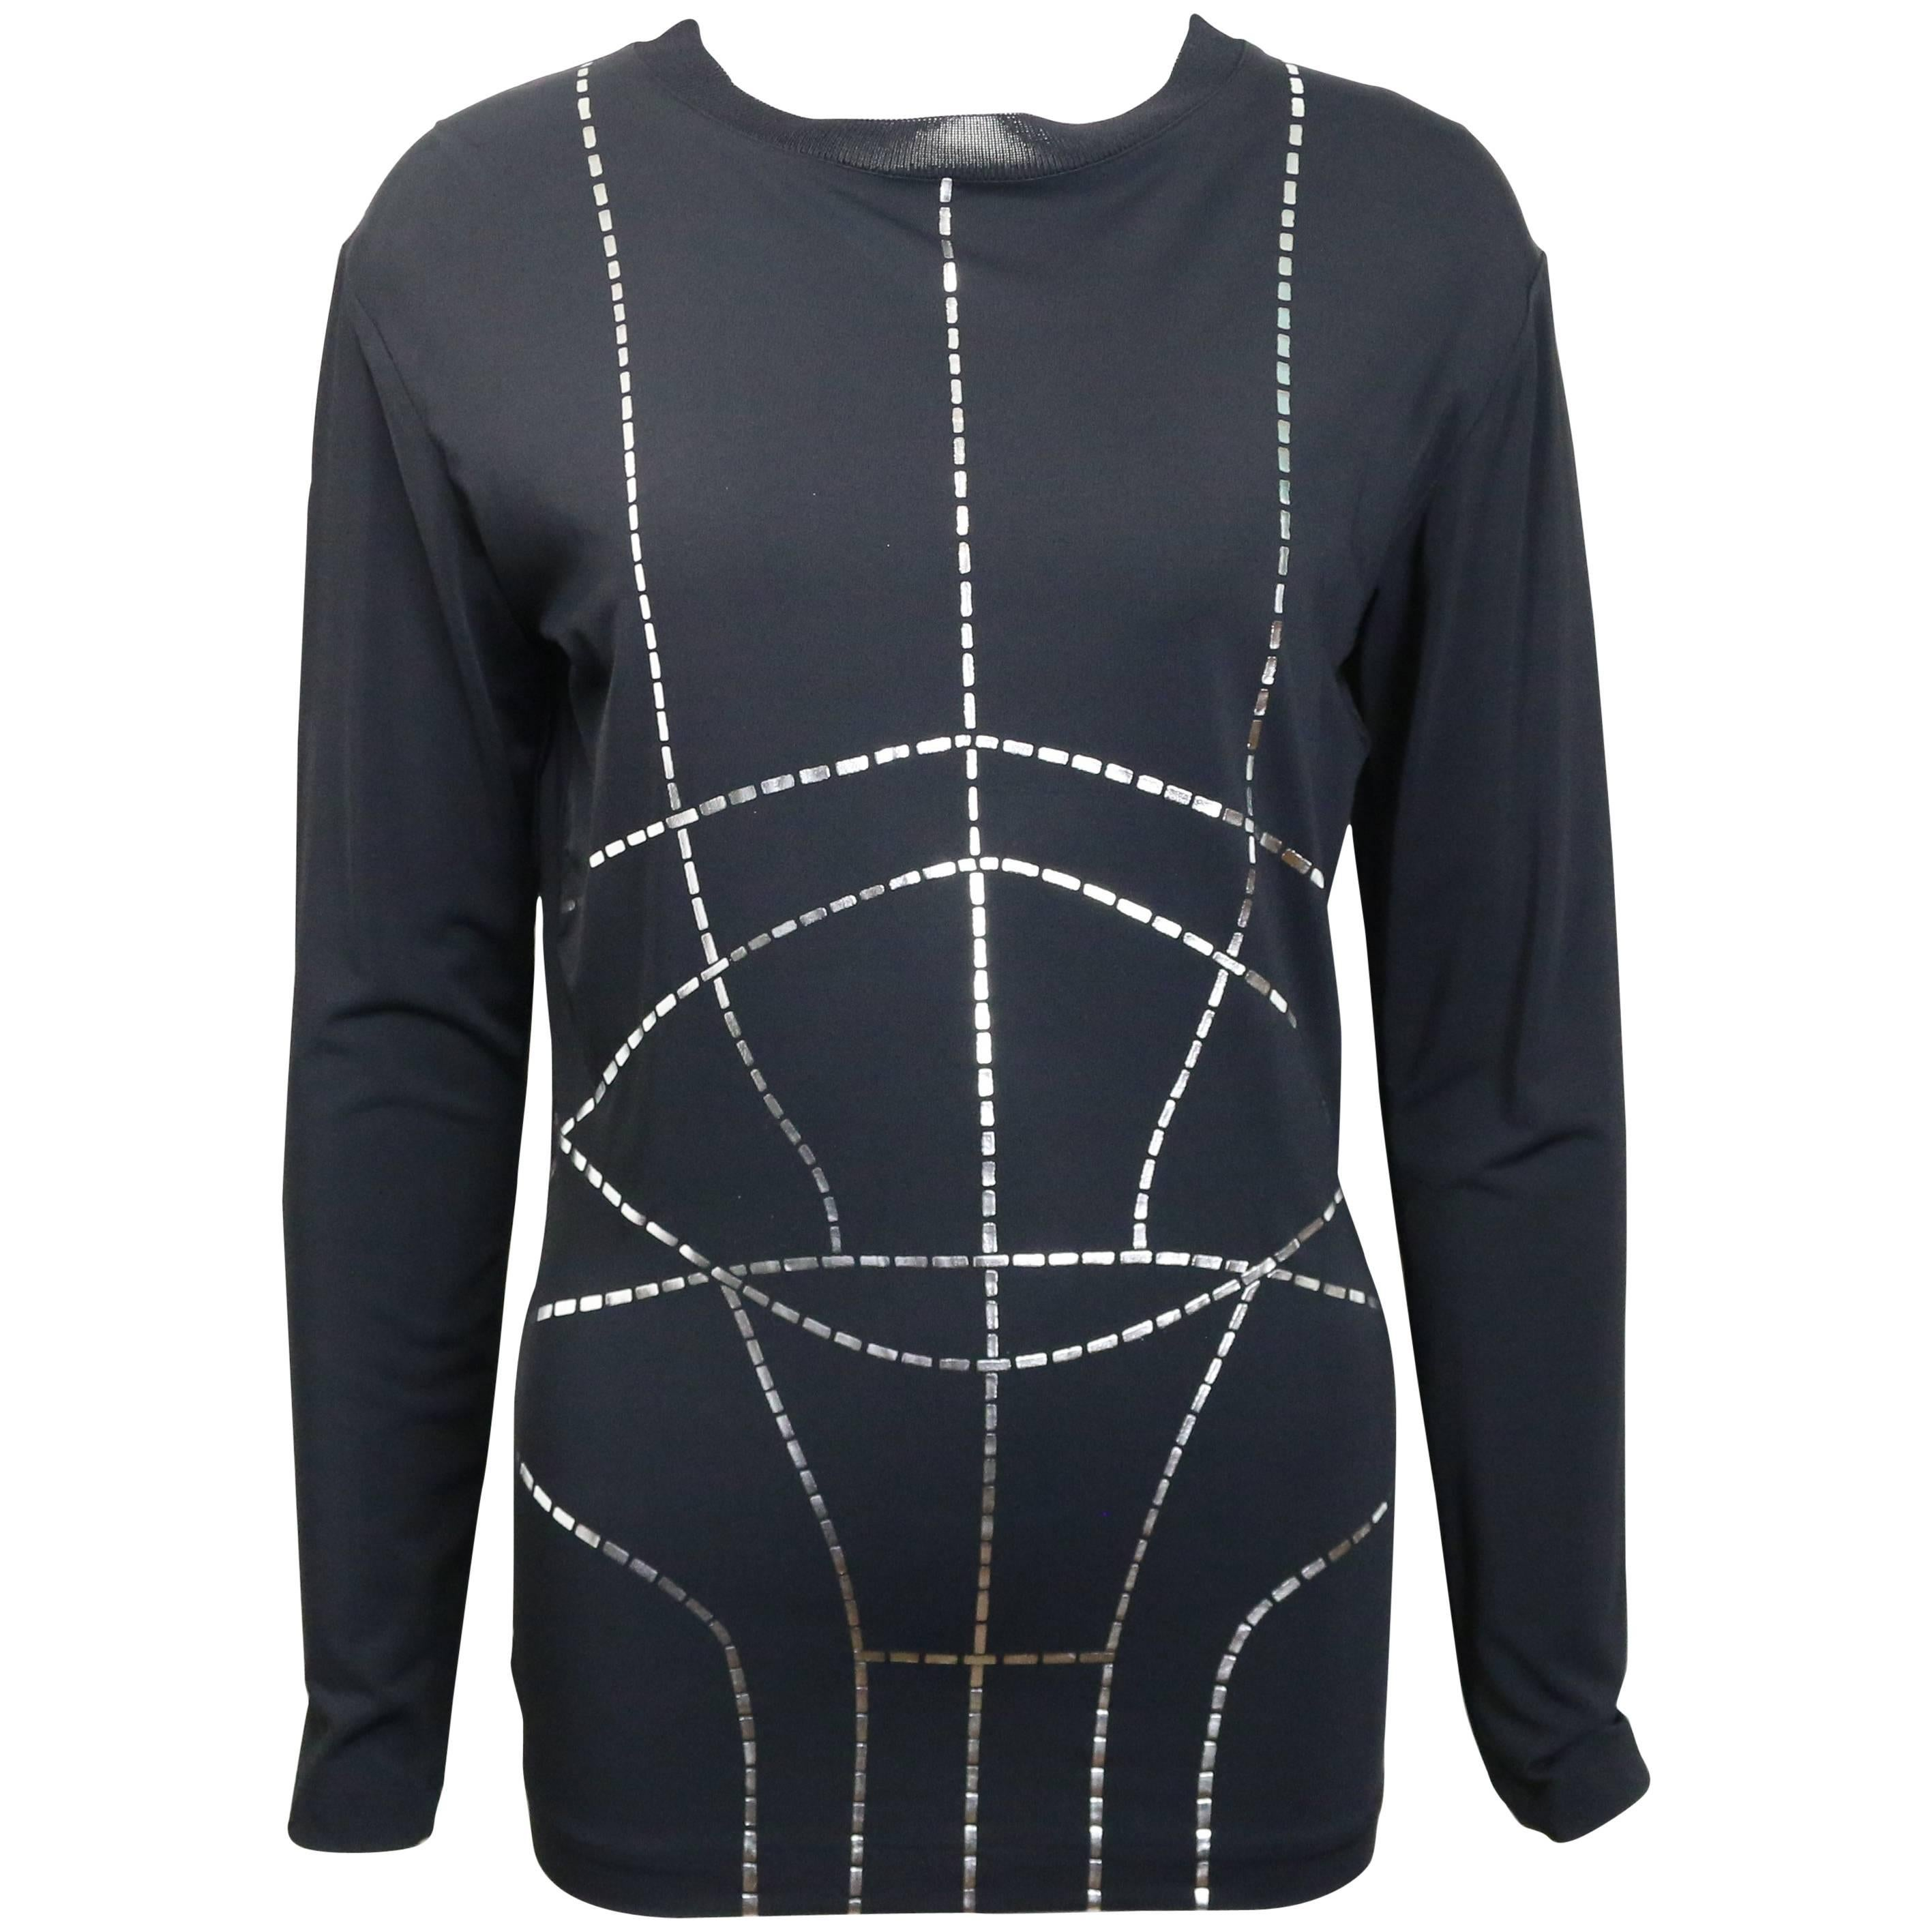 Martine Sitbon Tricot Black with silver metallic linings pattern Pullover Top